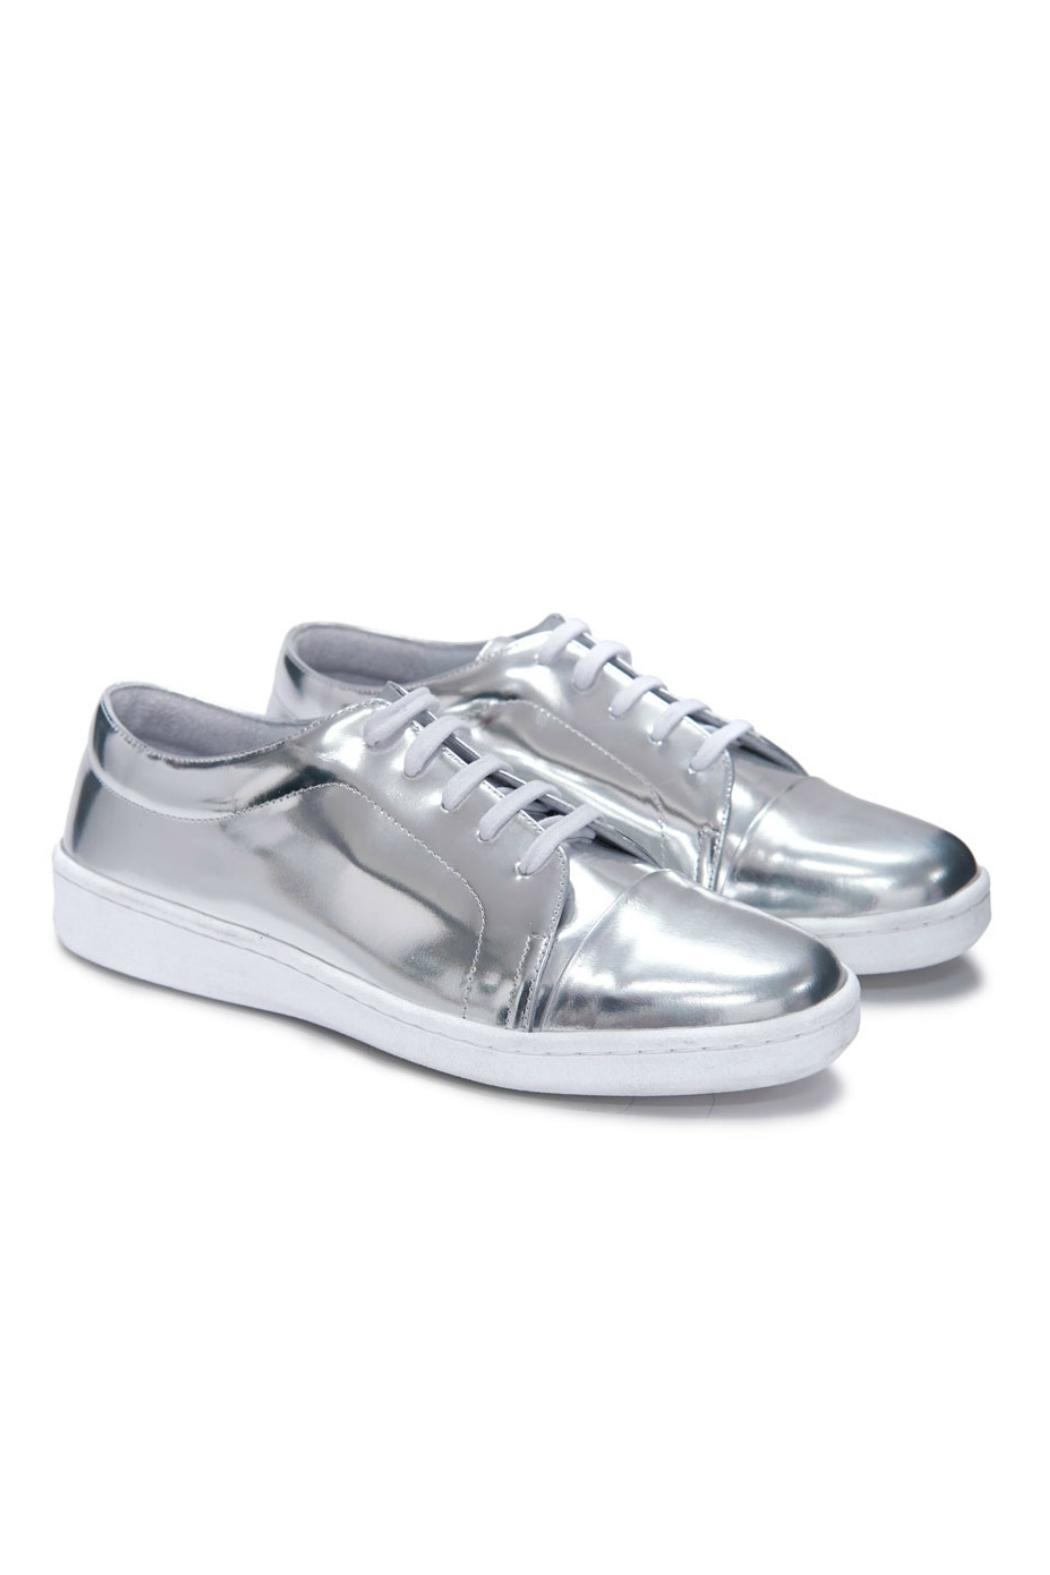 Miista Silver Sneaker From Des Moines By Peep Toe Shoptiques